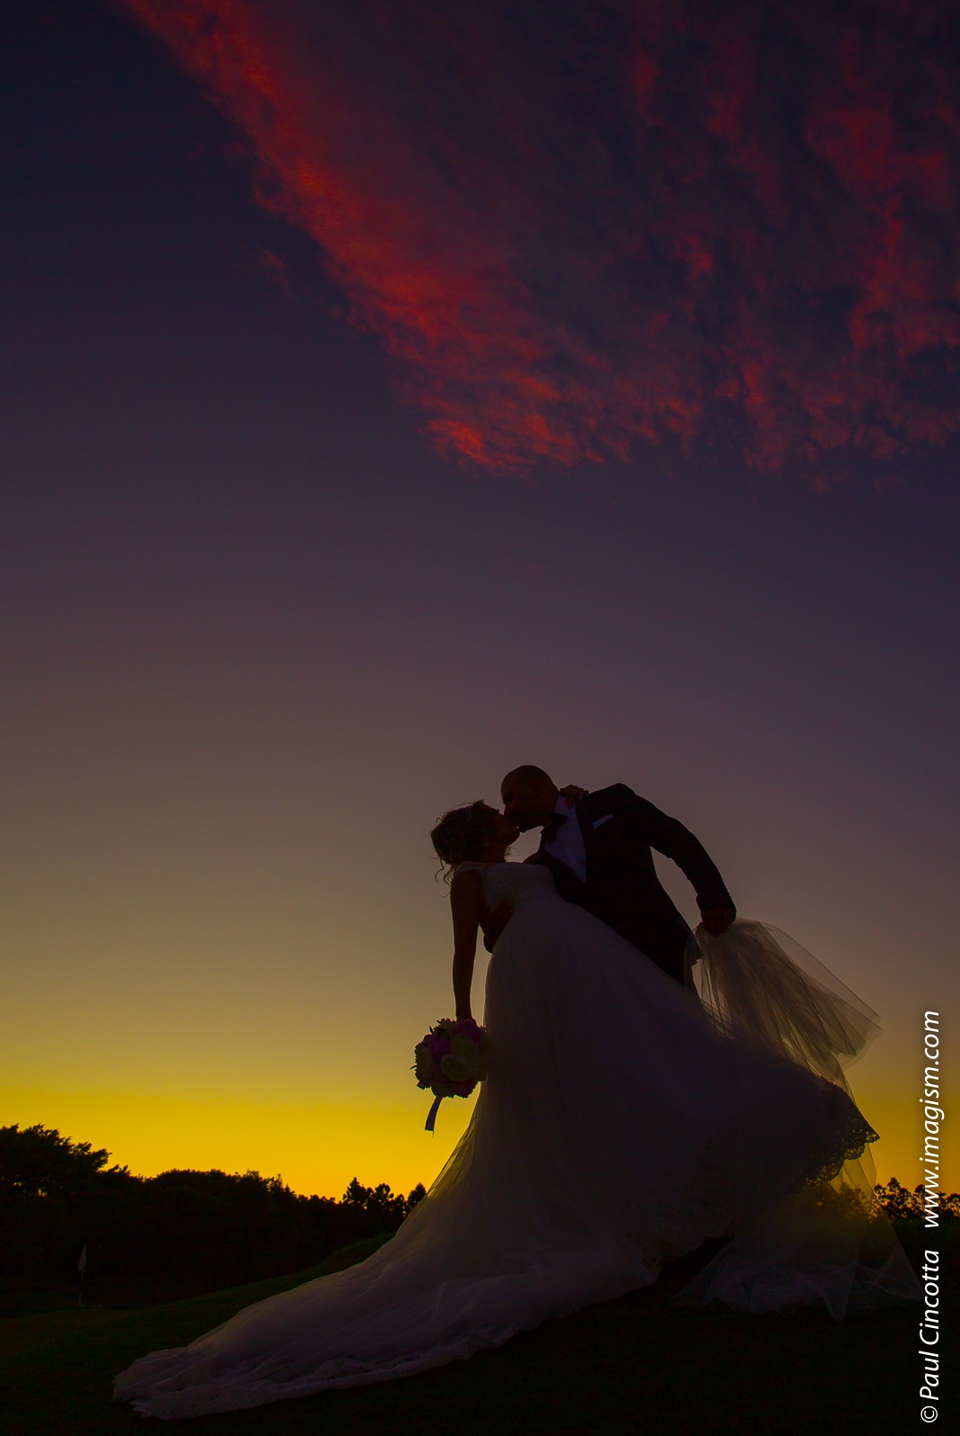 Gold Coast Wedding Photographer - RACV Royal Pines Resort - imagism Photography by Paul Cincotta